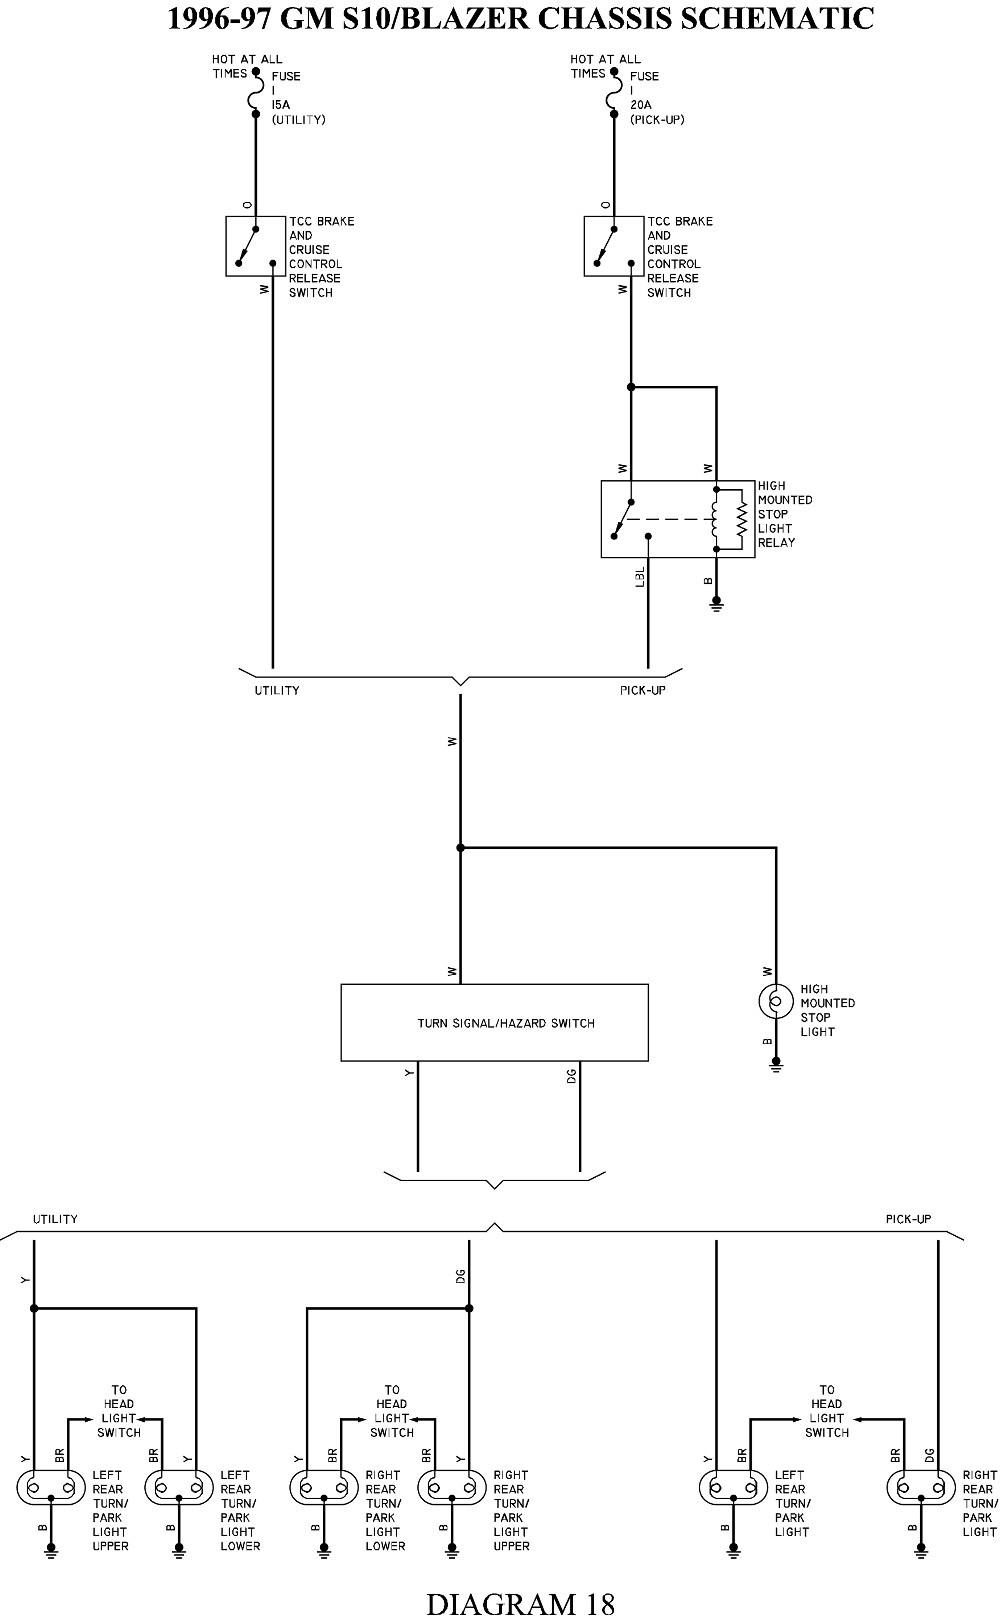 s10 wiring harness diagram wiring diagram chevy s10 wiring harness diagram 1996 s10 pickup wiring diagram #5